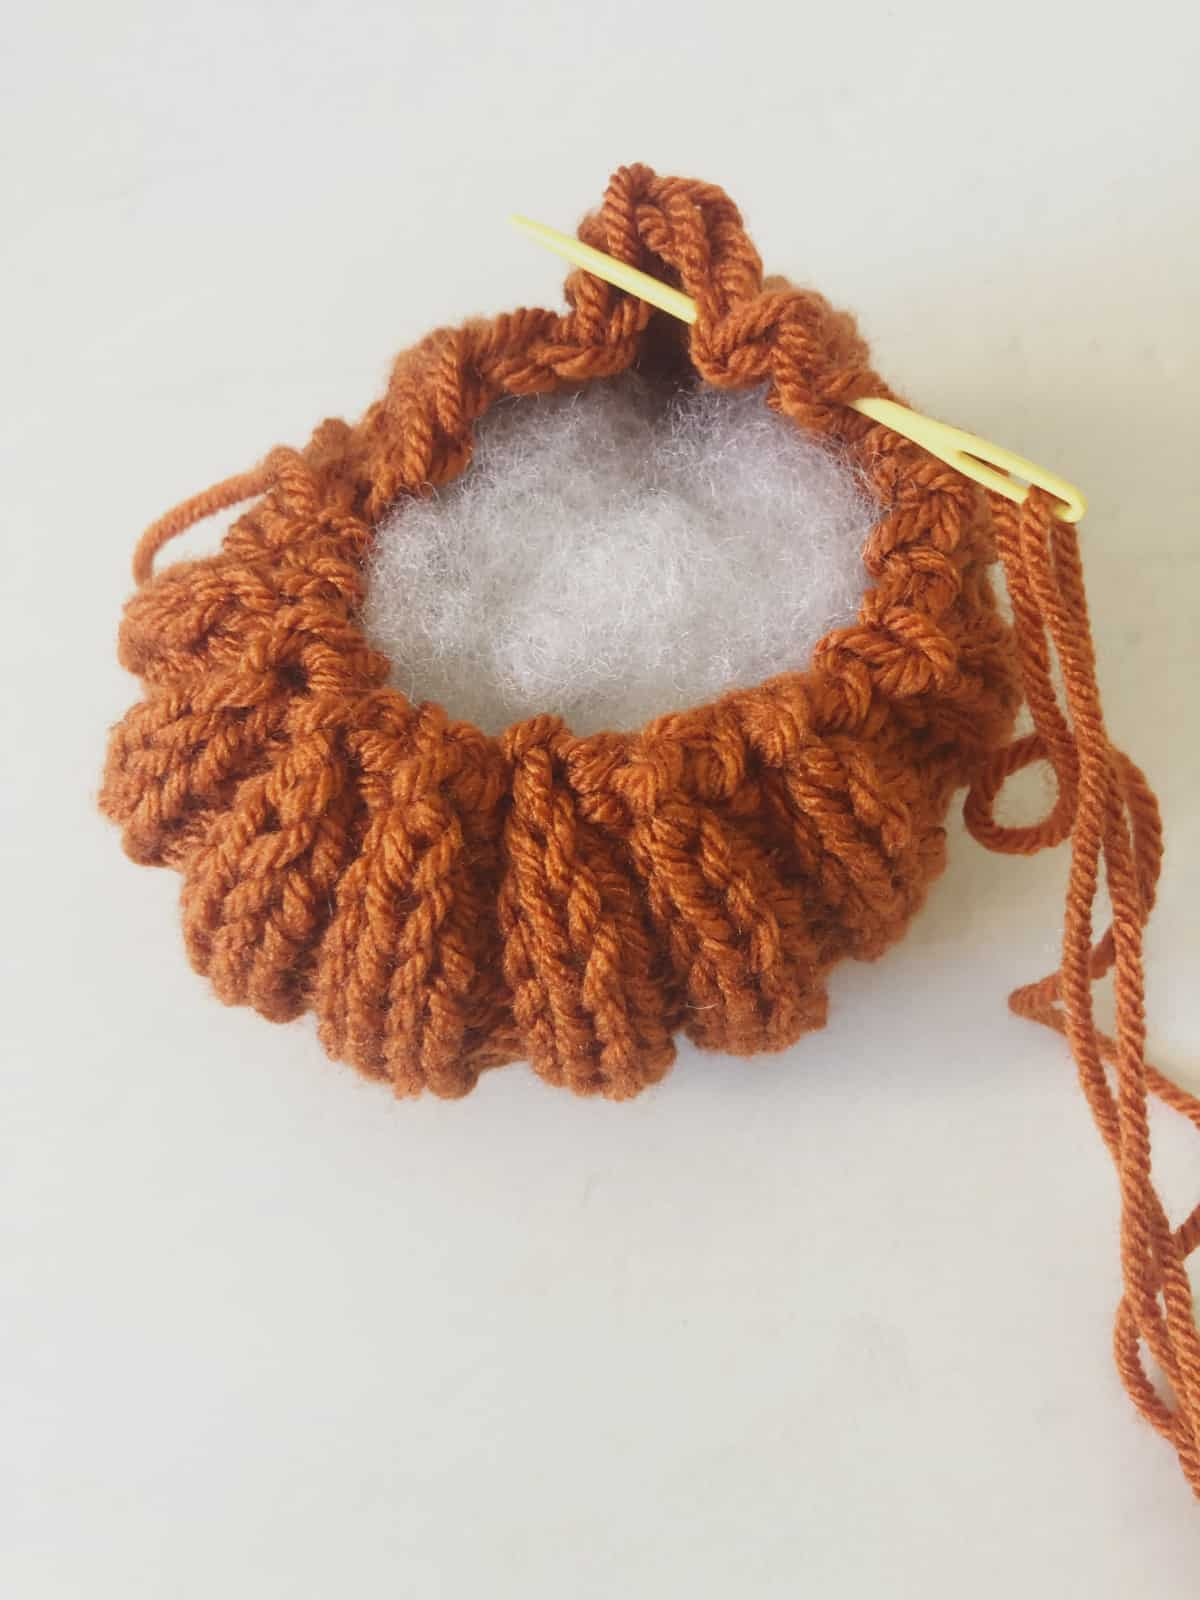 picture of sewing top of pumpkin closed running stitch